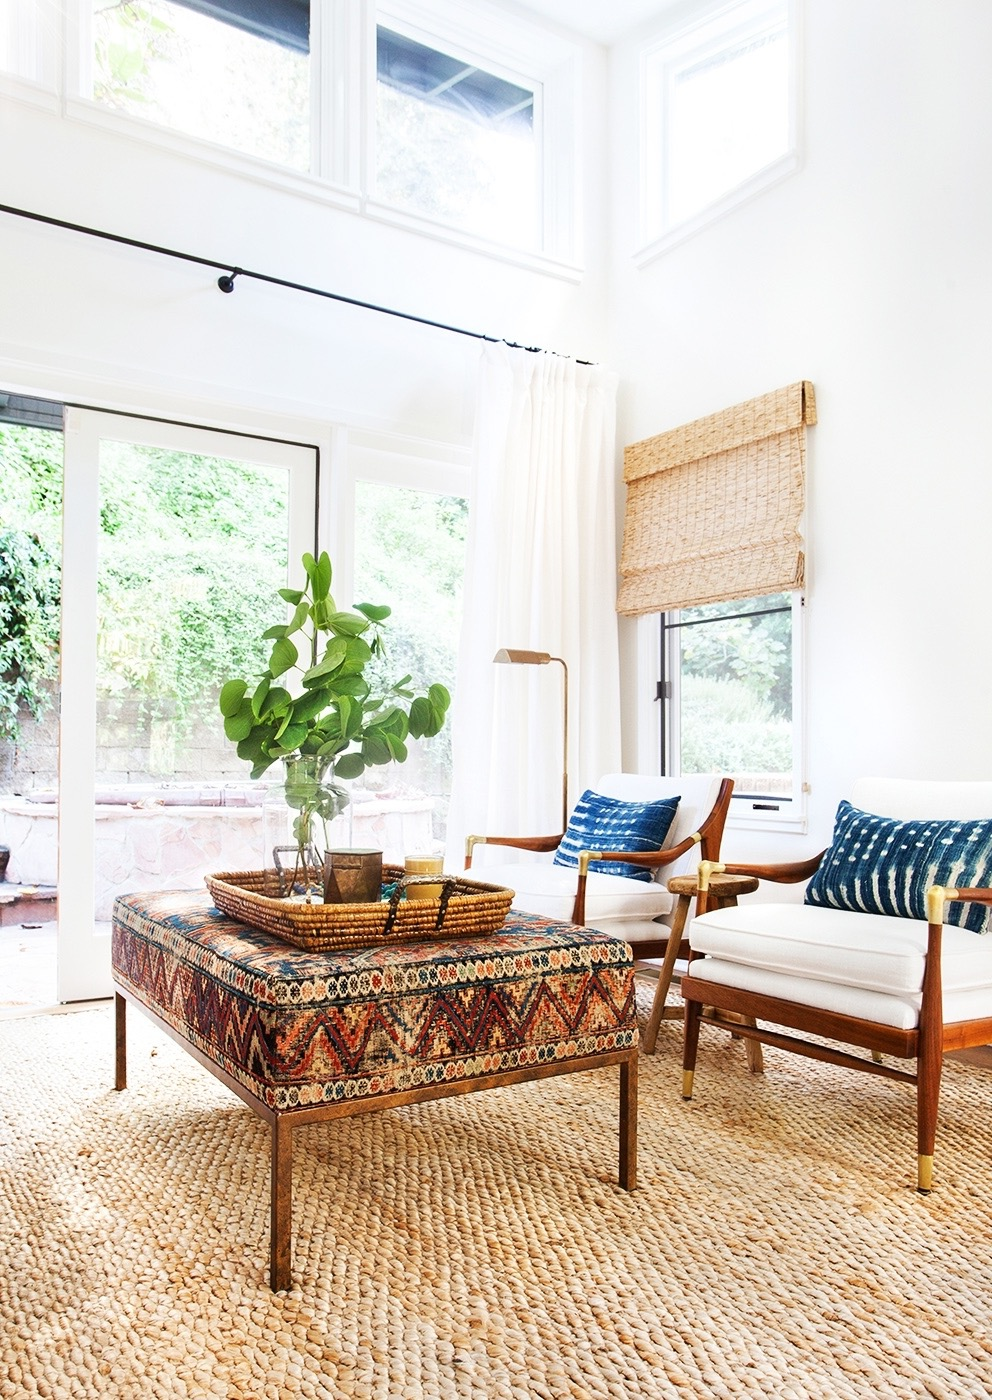 Oriental Living Room Decor With Braided Rugs And Persian Accessories (View 6 of 15)